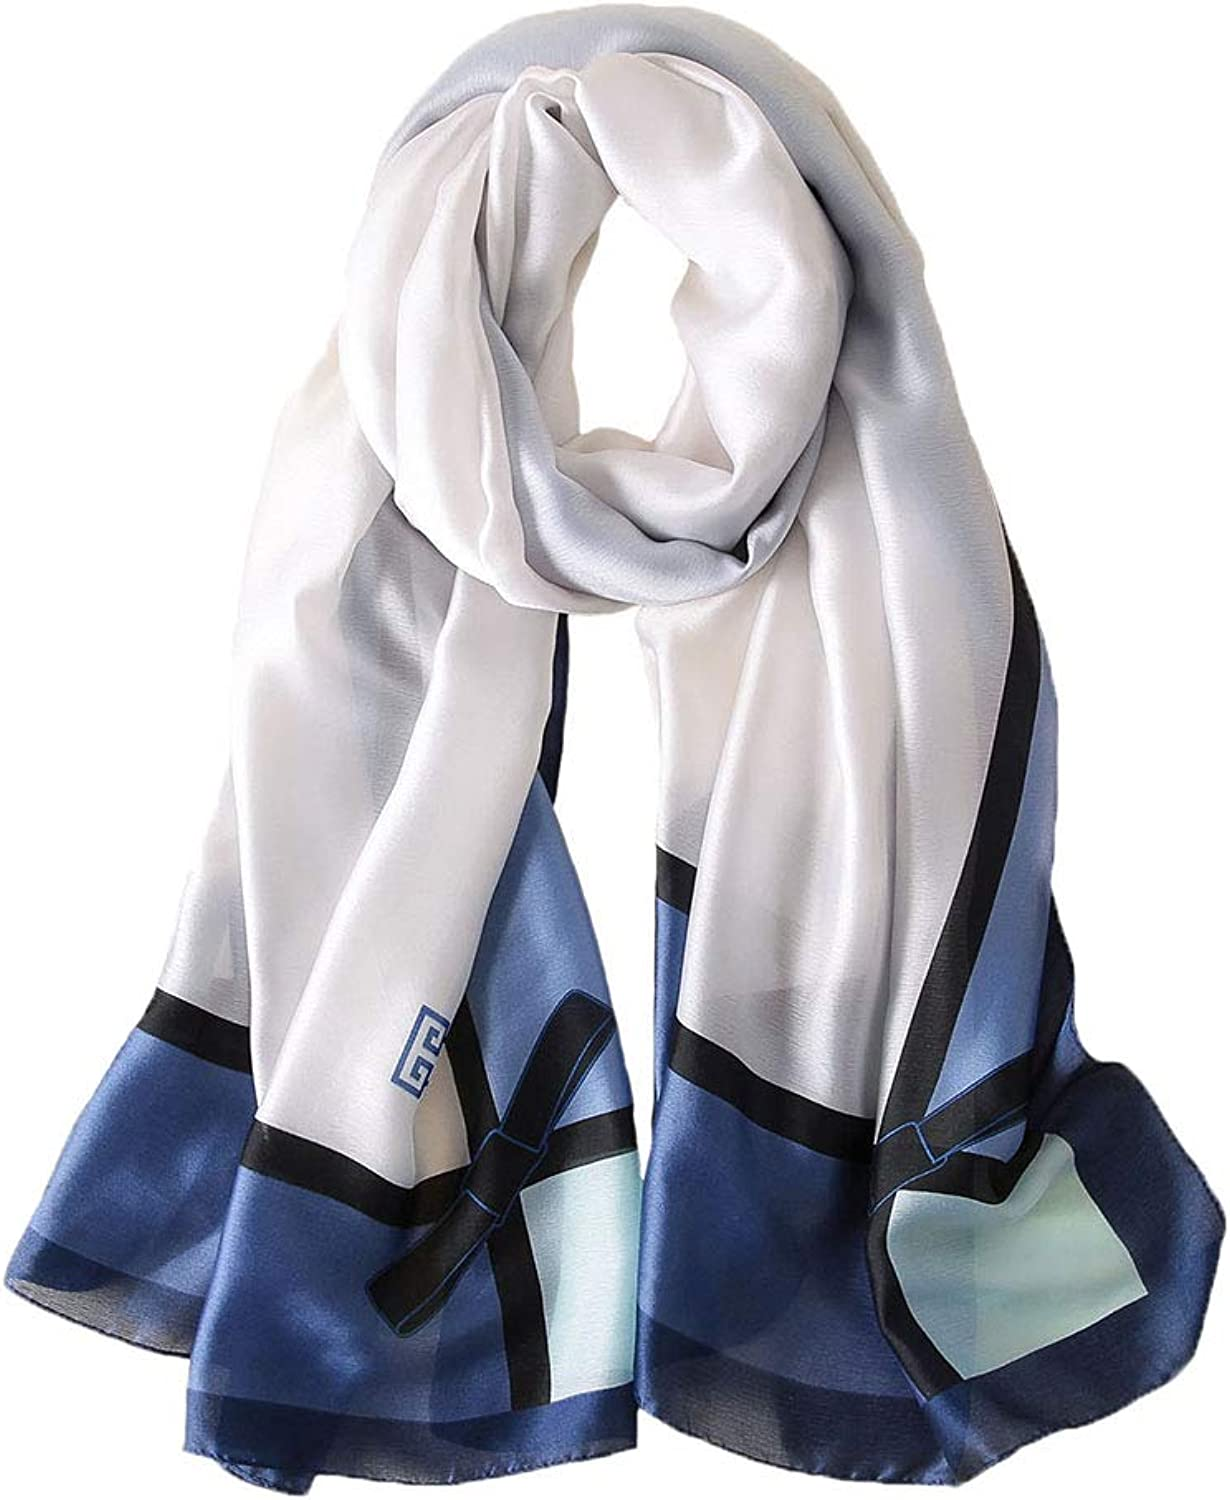 100% Mulberry Silk Scarf Women's Fashion Pattern Large Satin Headscarf Ladies Floral Satin Scarf Gift for Valentine's Day ((Bowknot White bluee))